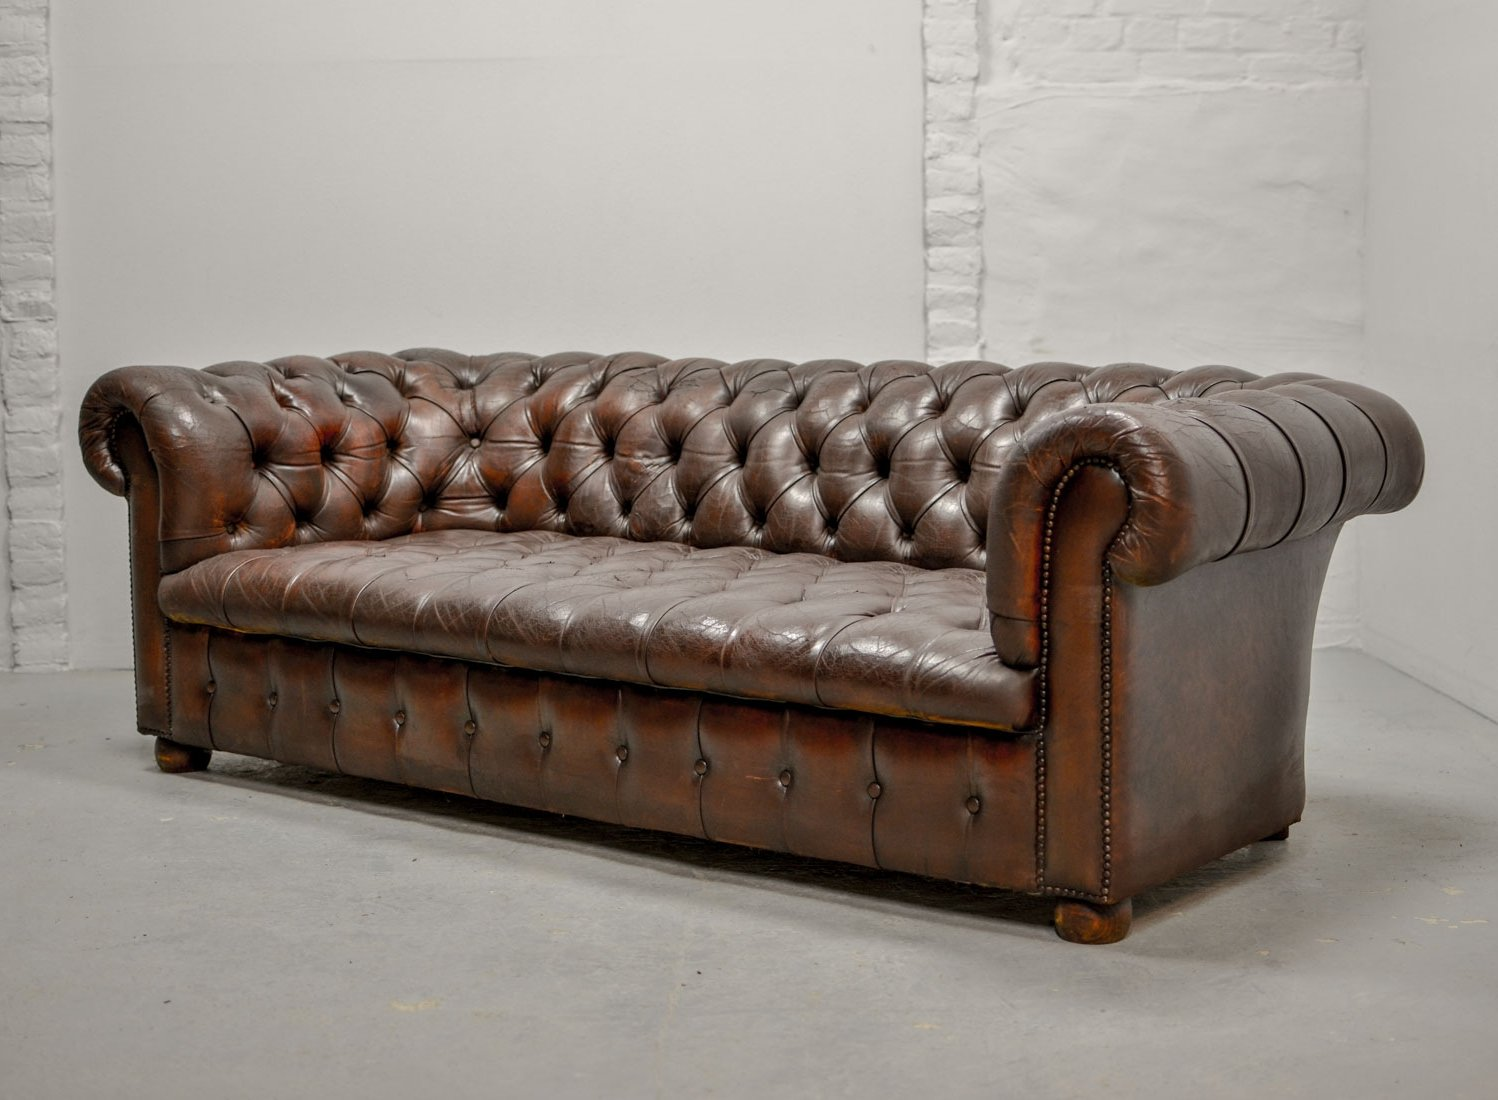 - Tufted Chestnut Deep Red Brown Leather Chesterfield Sofa, England